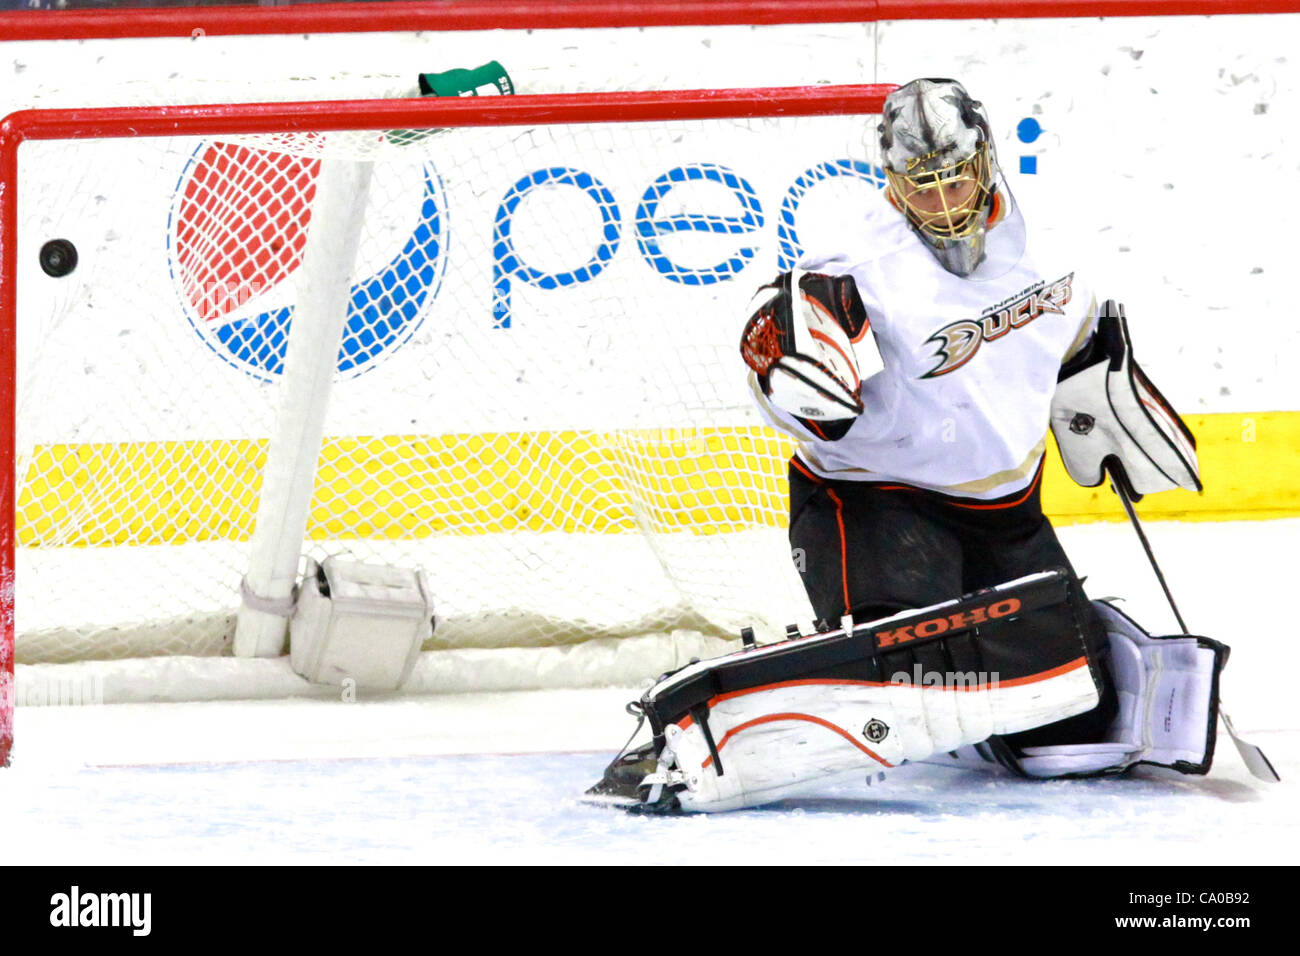 Image result for jonas hiller toe buckle